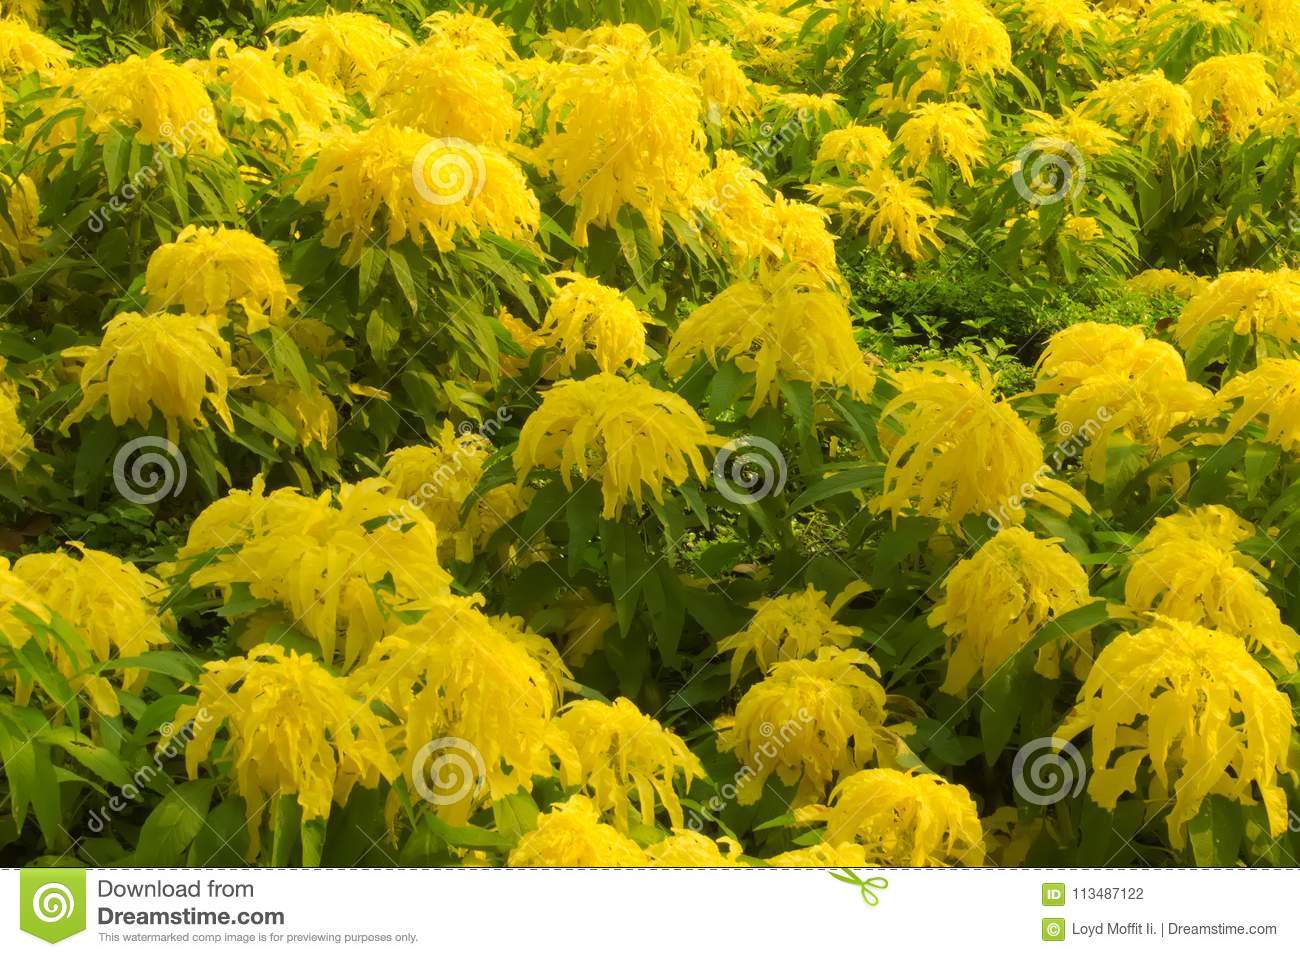 Unusually large hanging yellow flowers, in a large garden bed of a lush green Thai park.